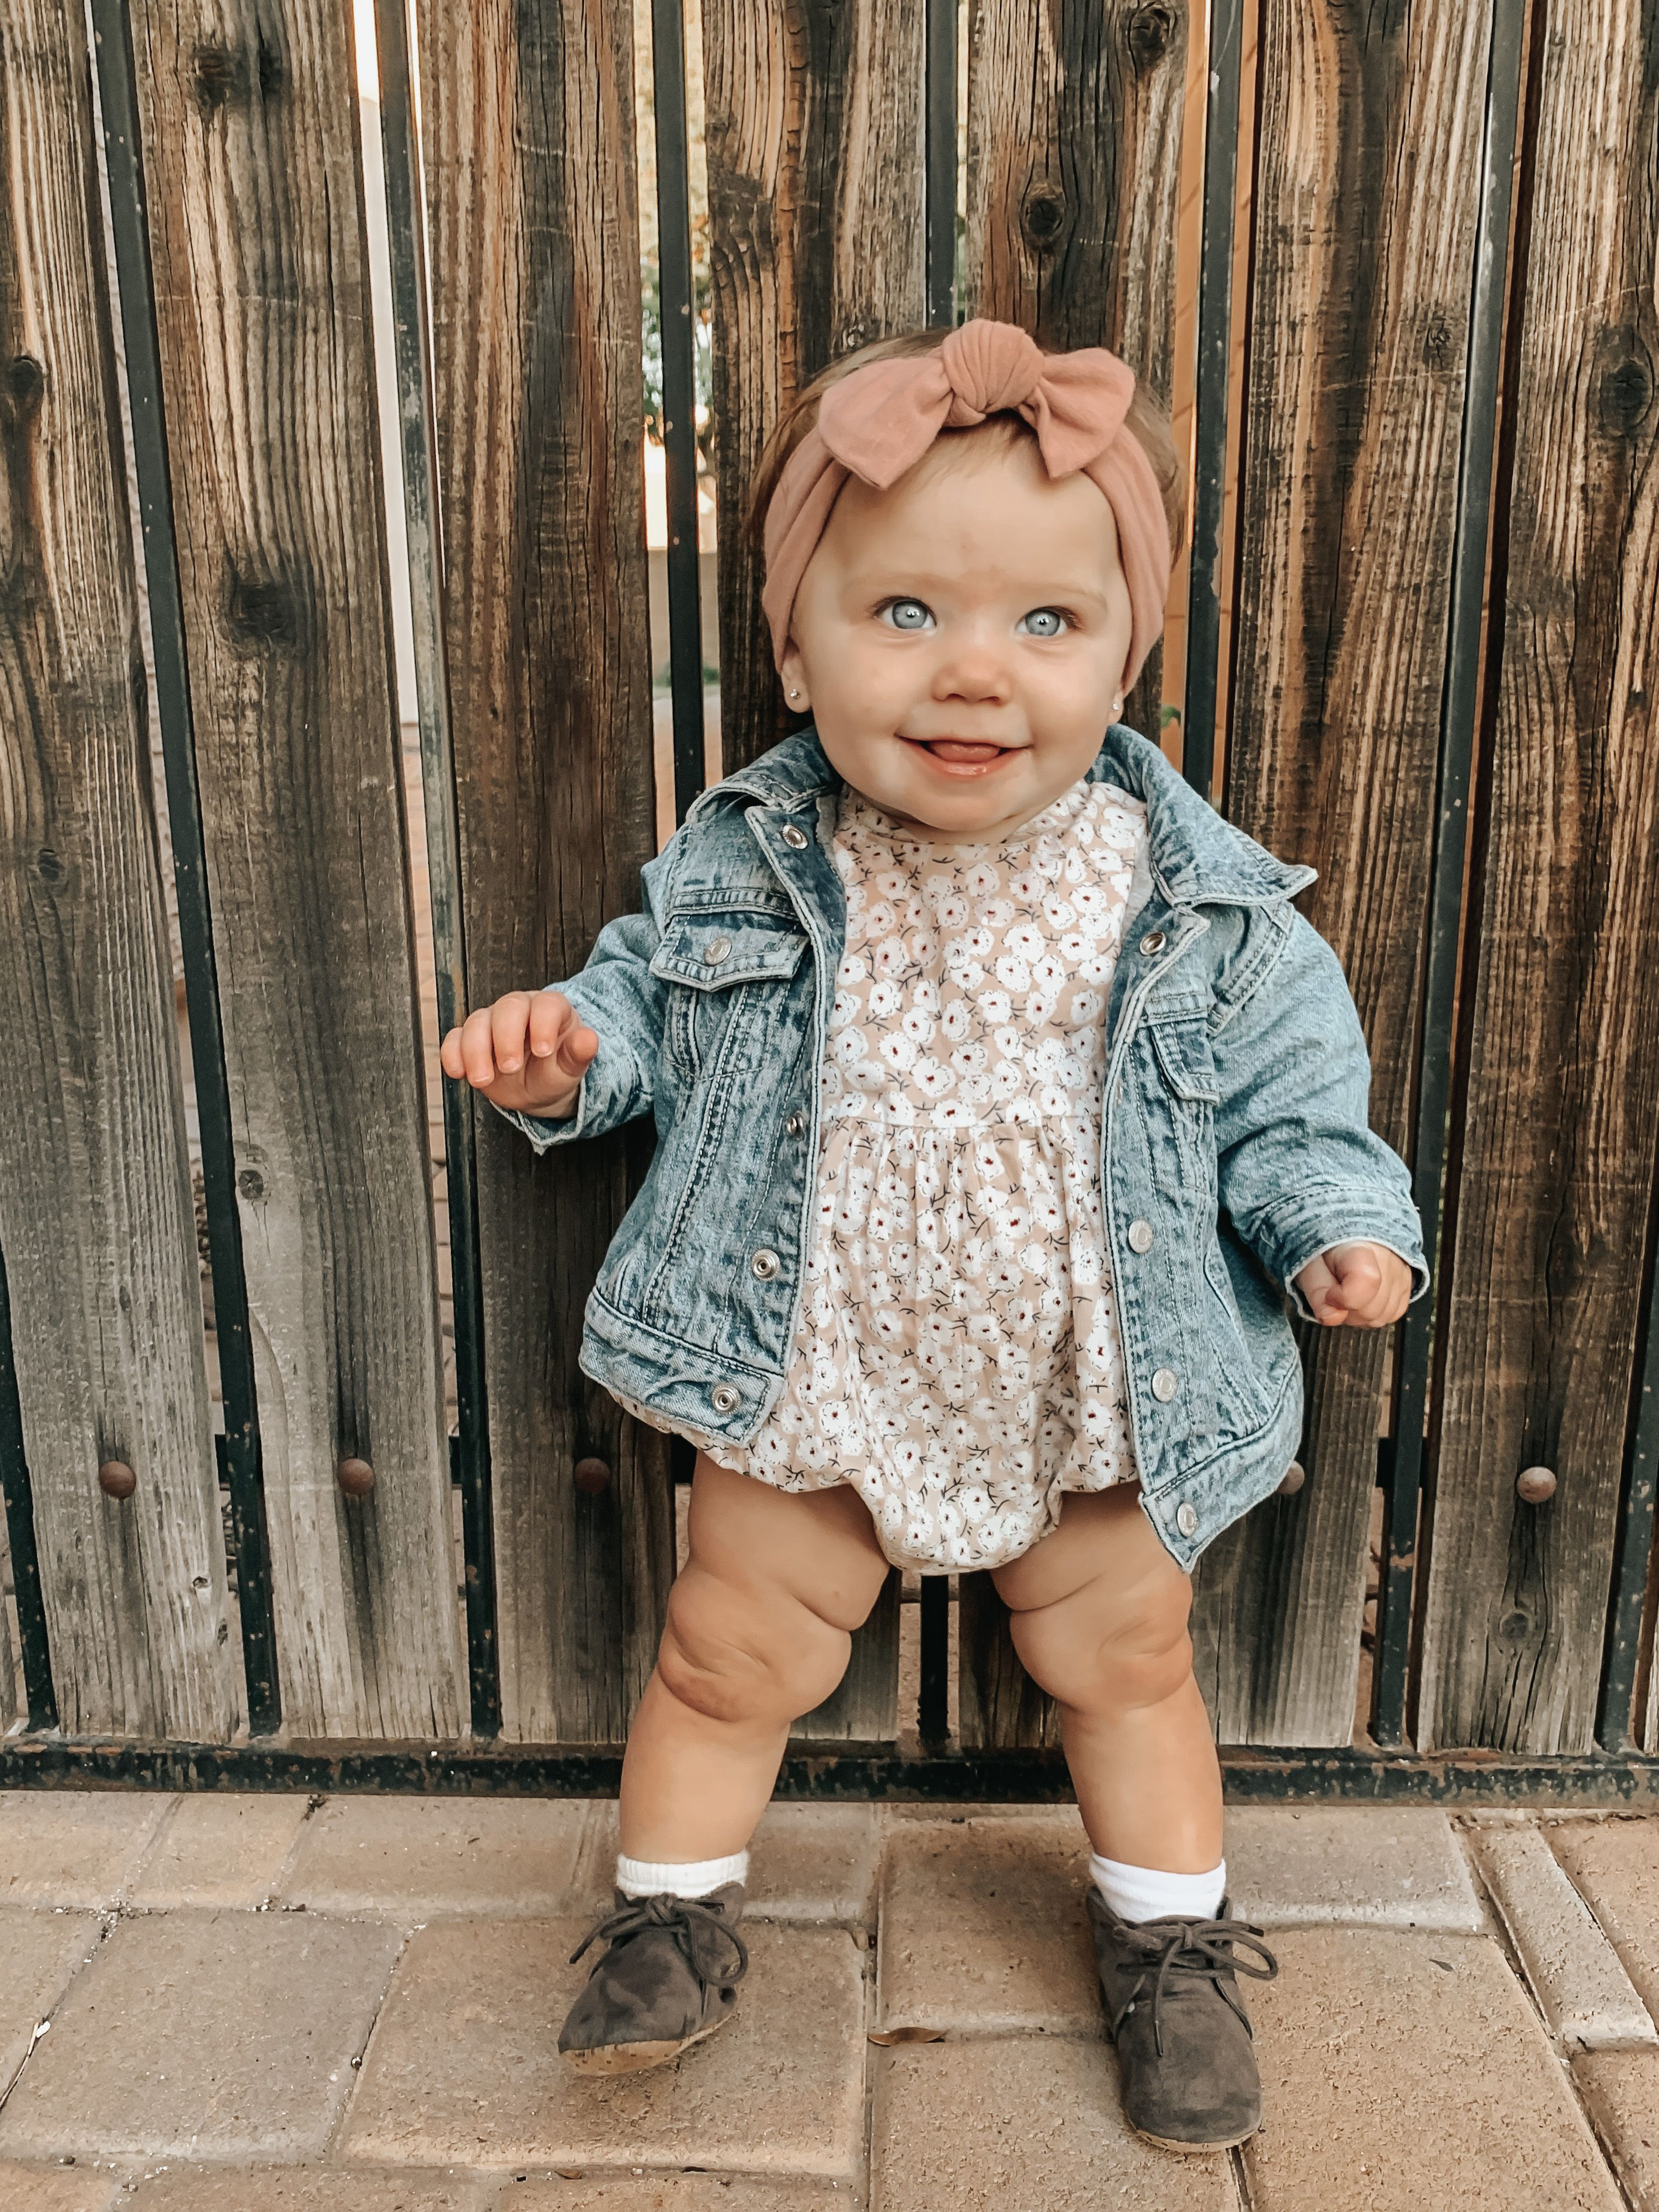 Blue Eyed Baby Girl In 2020 Blue Eyed Baby Baby Girl Clothes Cute Baby Pictures